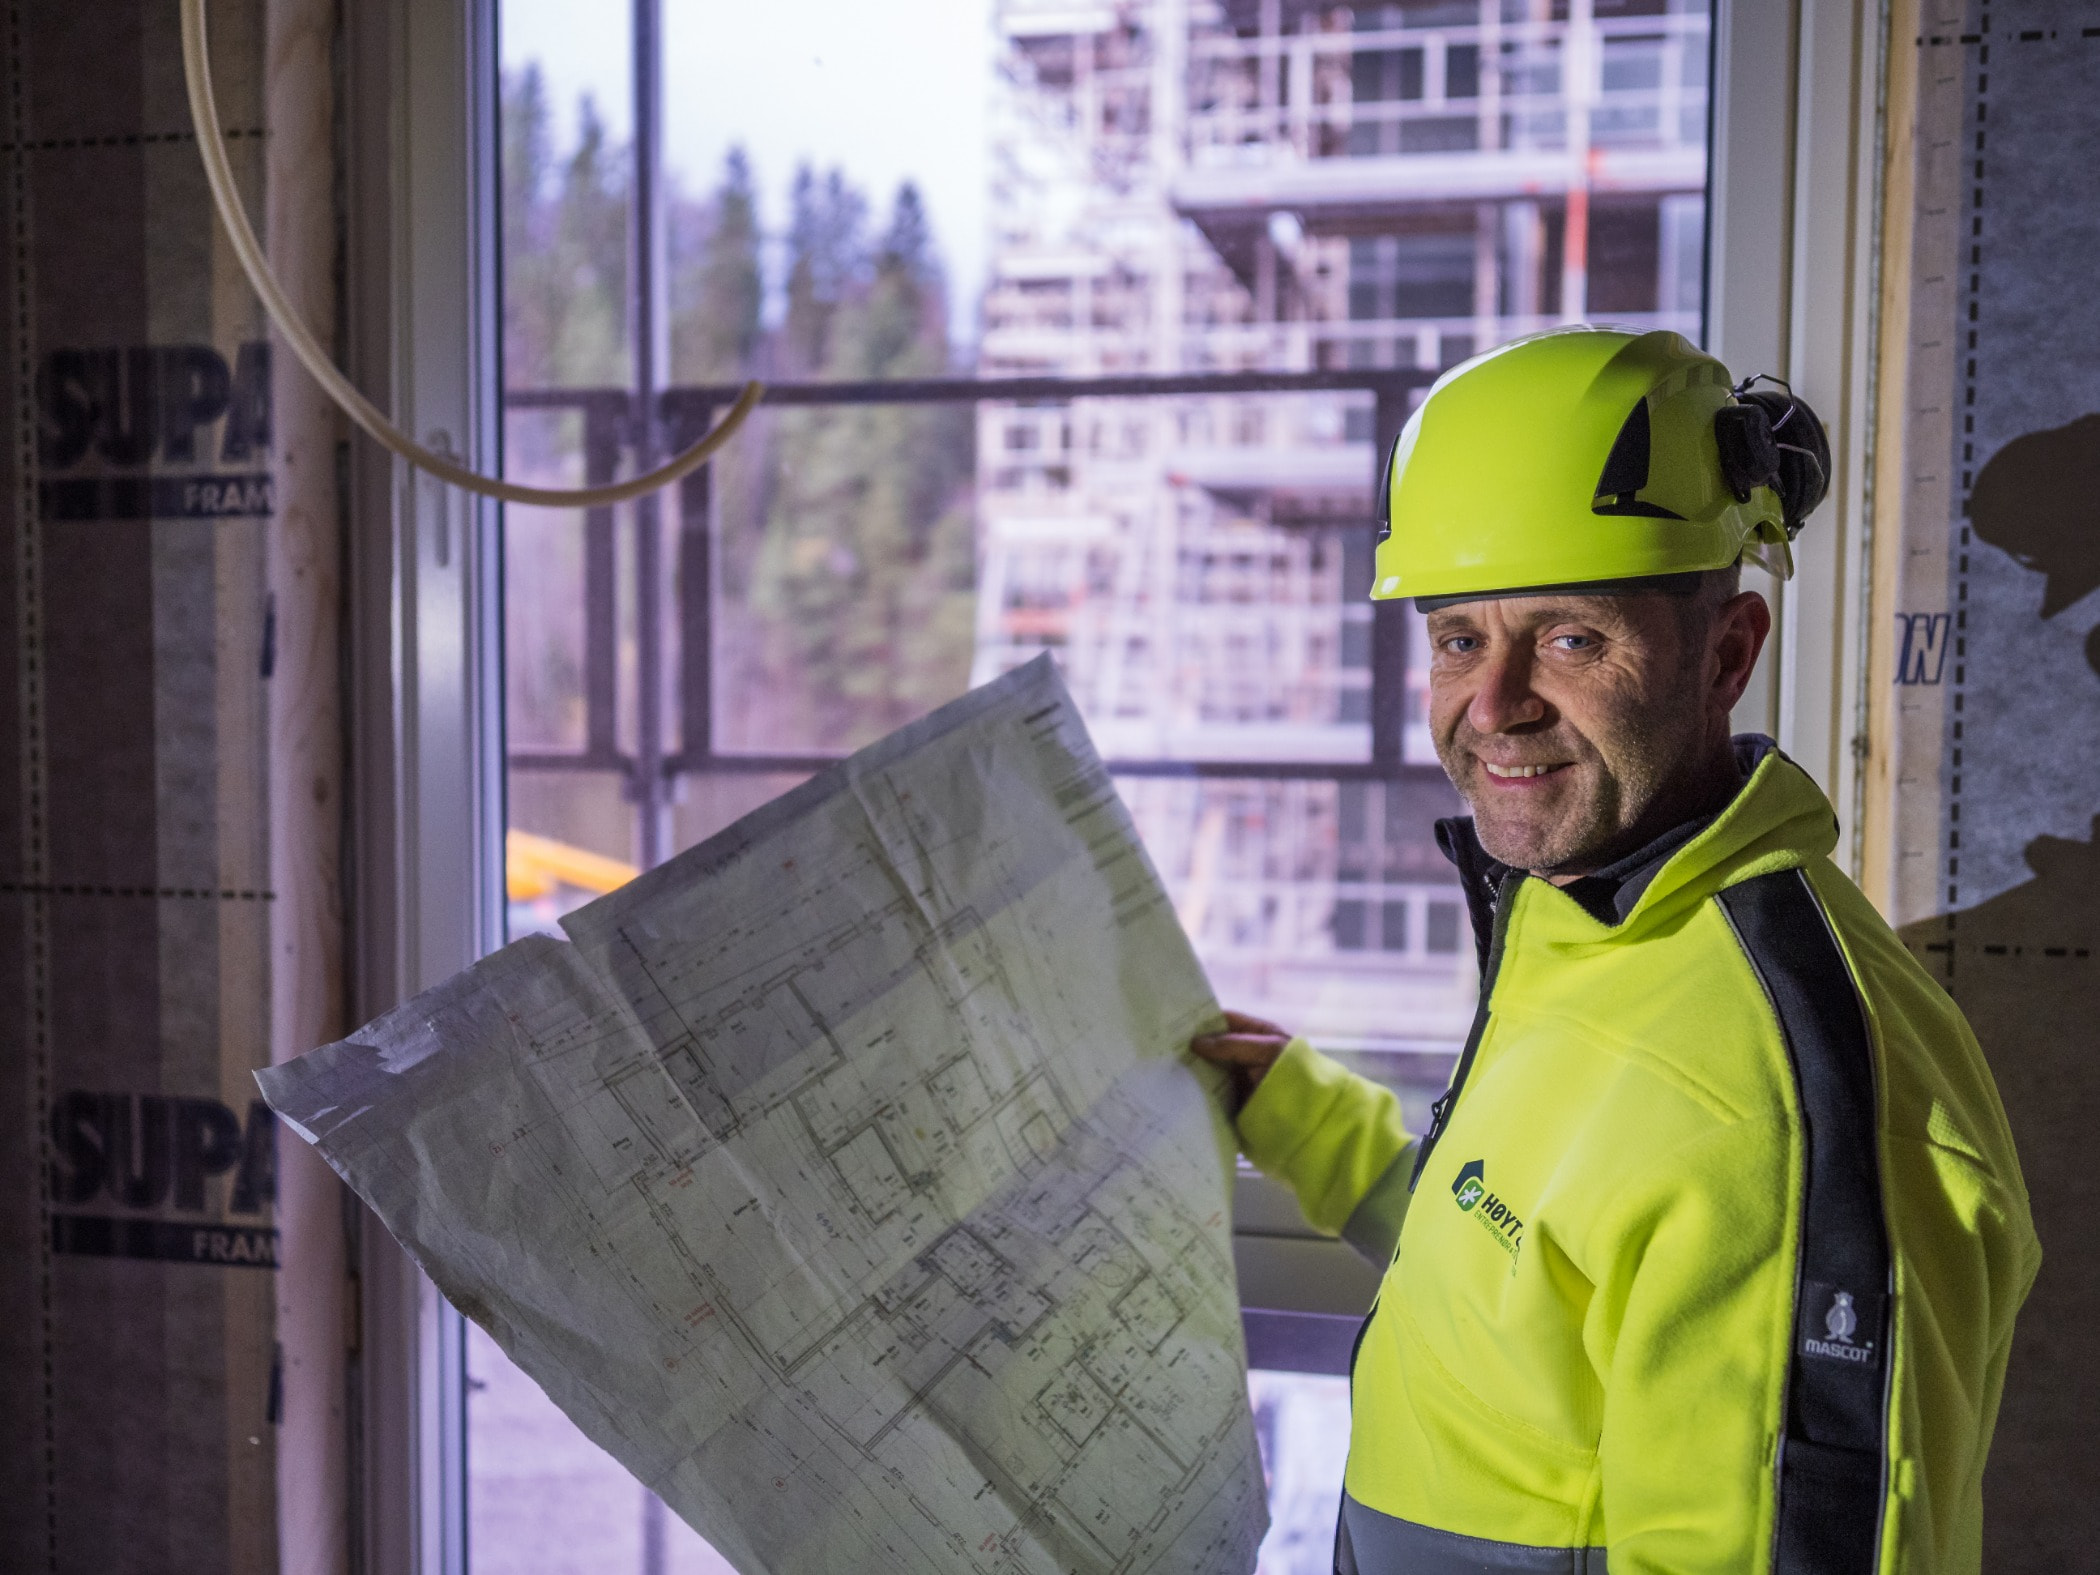 Personal protective equipment, High-visibility clothing, Construction worker, Hard hat, Engineer